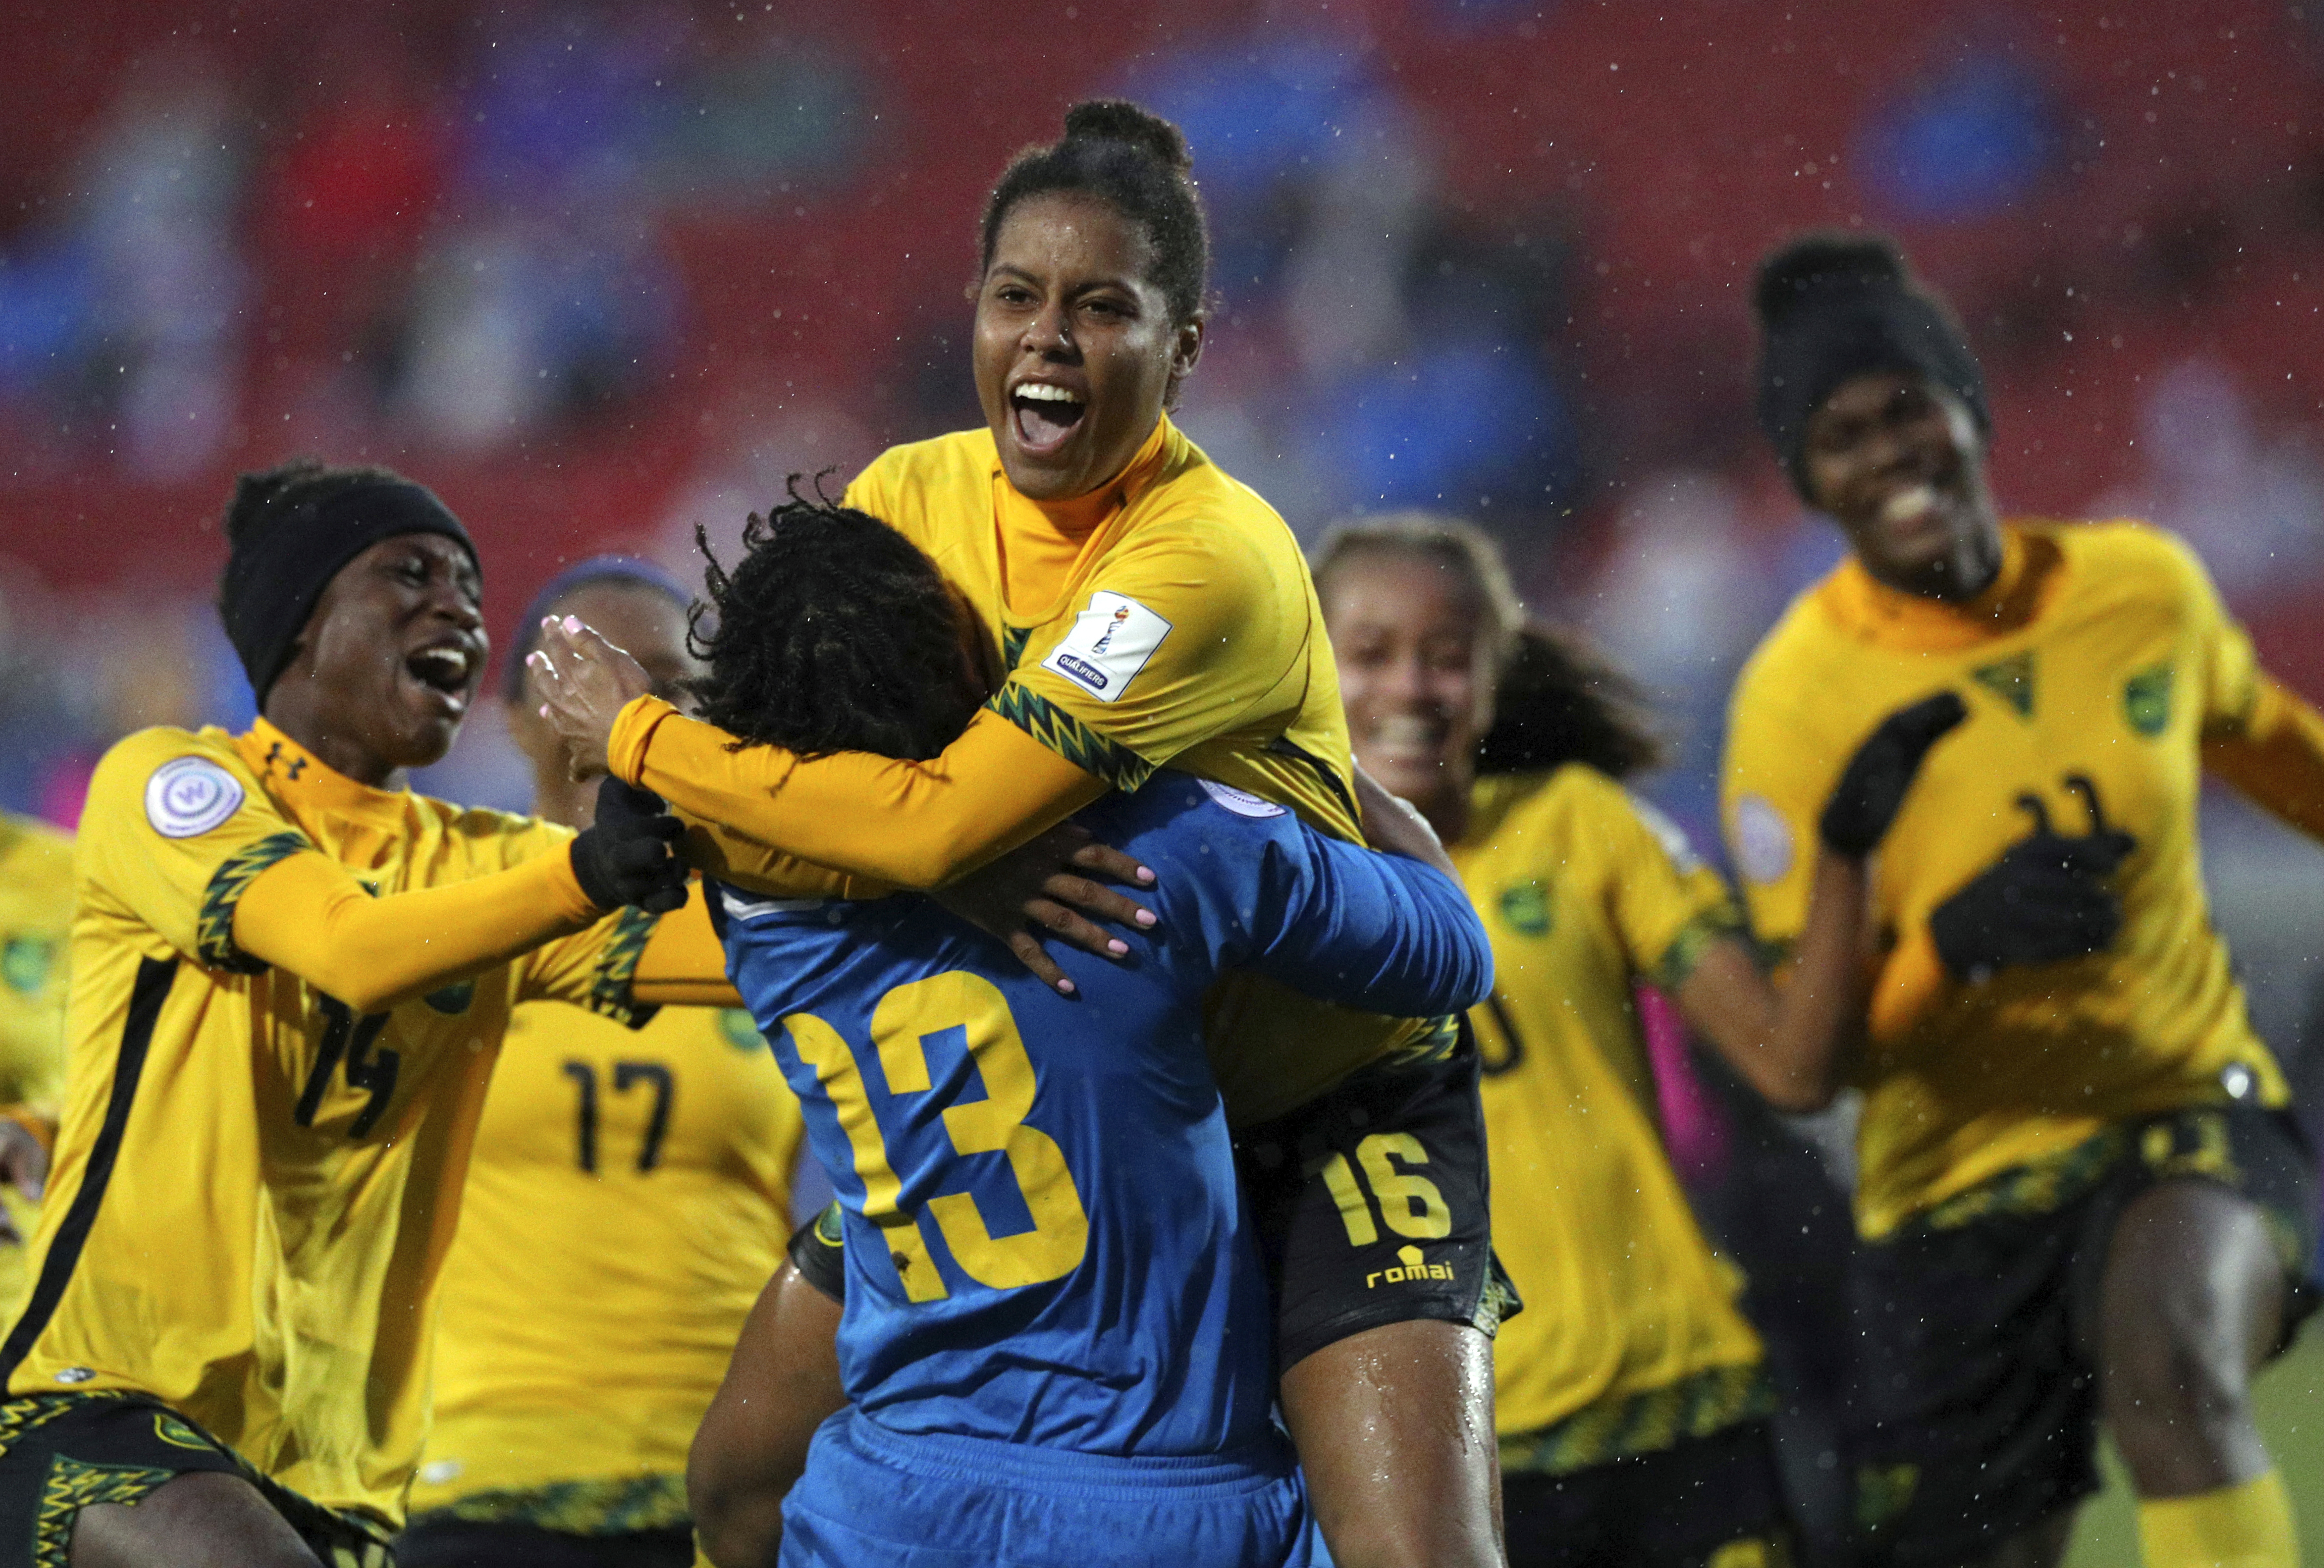 Jamaica's 'Reggae Girlz' are making their first appearance at the Women's World Cup